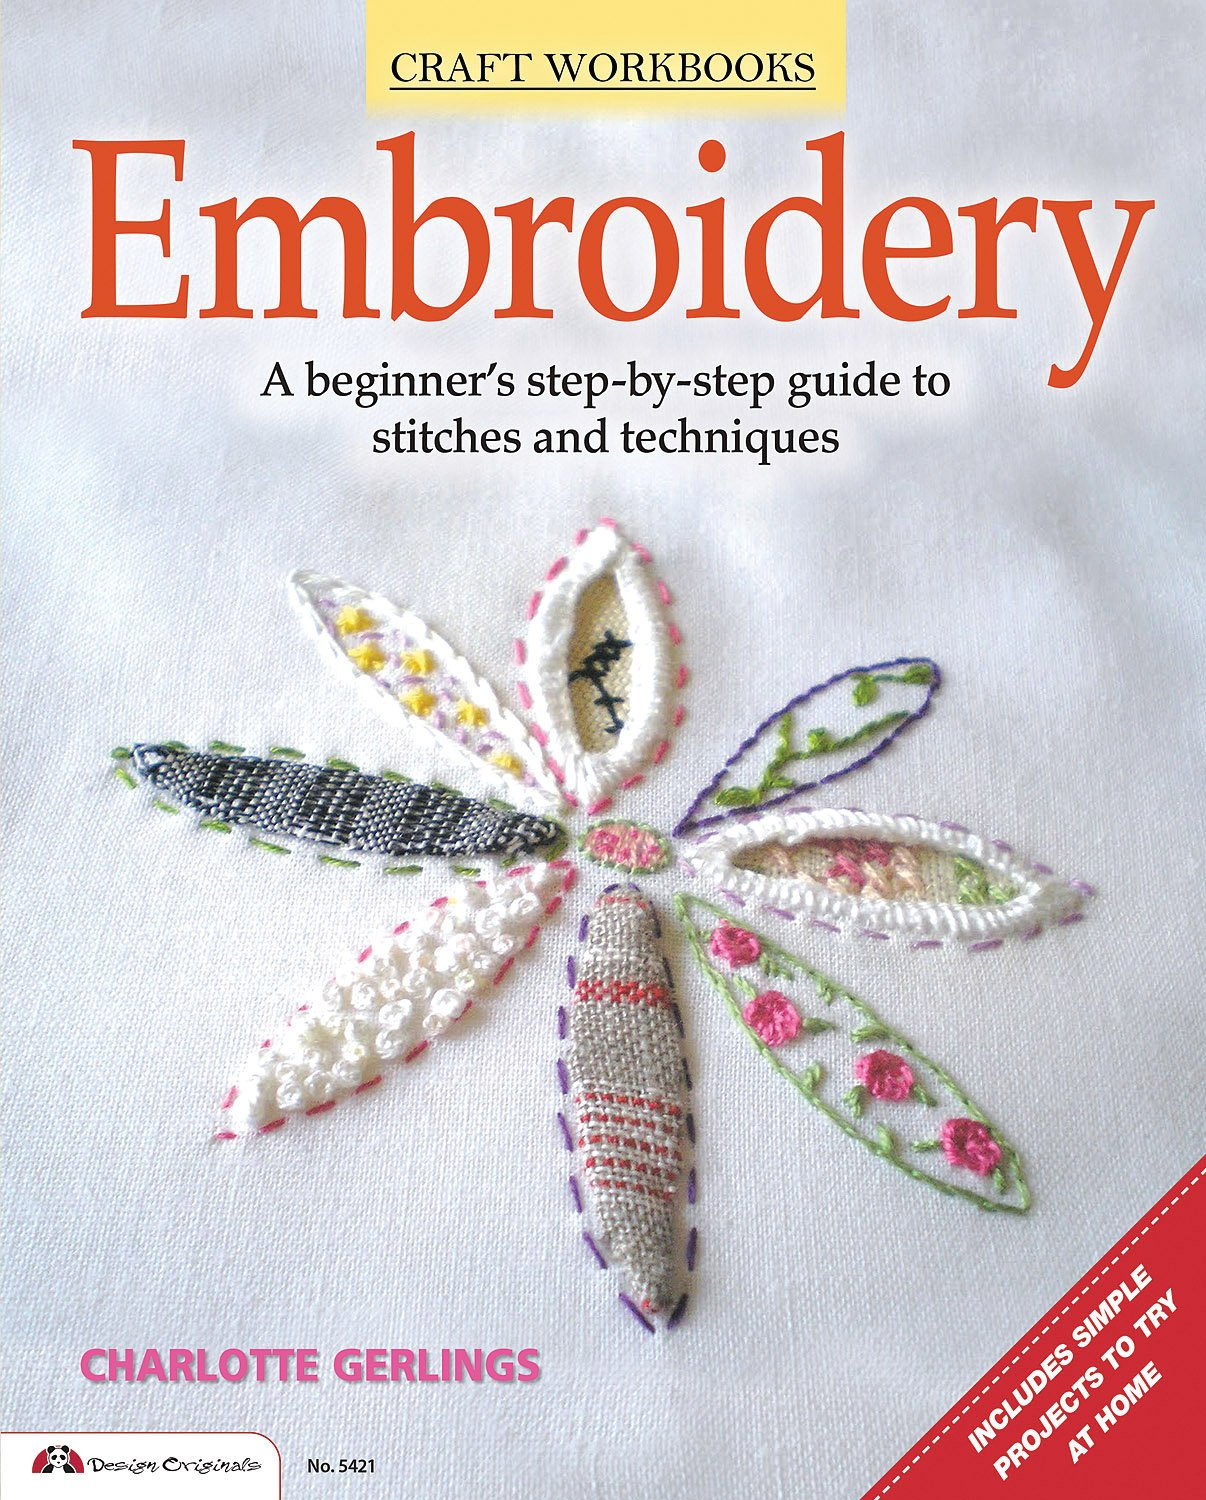 Read Online Embroidery: A Beginner's Step-by-Step Guide to Stitches and Techniques (Design Originals) More than 70 Stitches; Instructions for Hand & Machine Methods, Plus Regional Traditions pdf